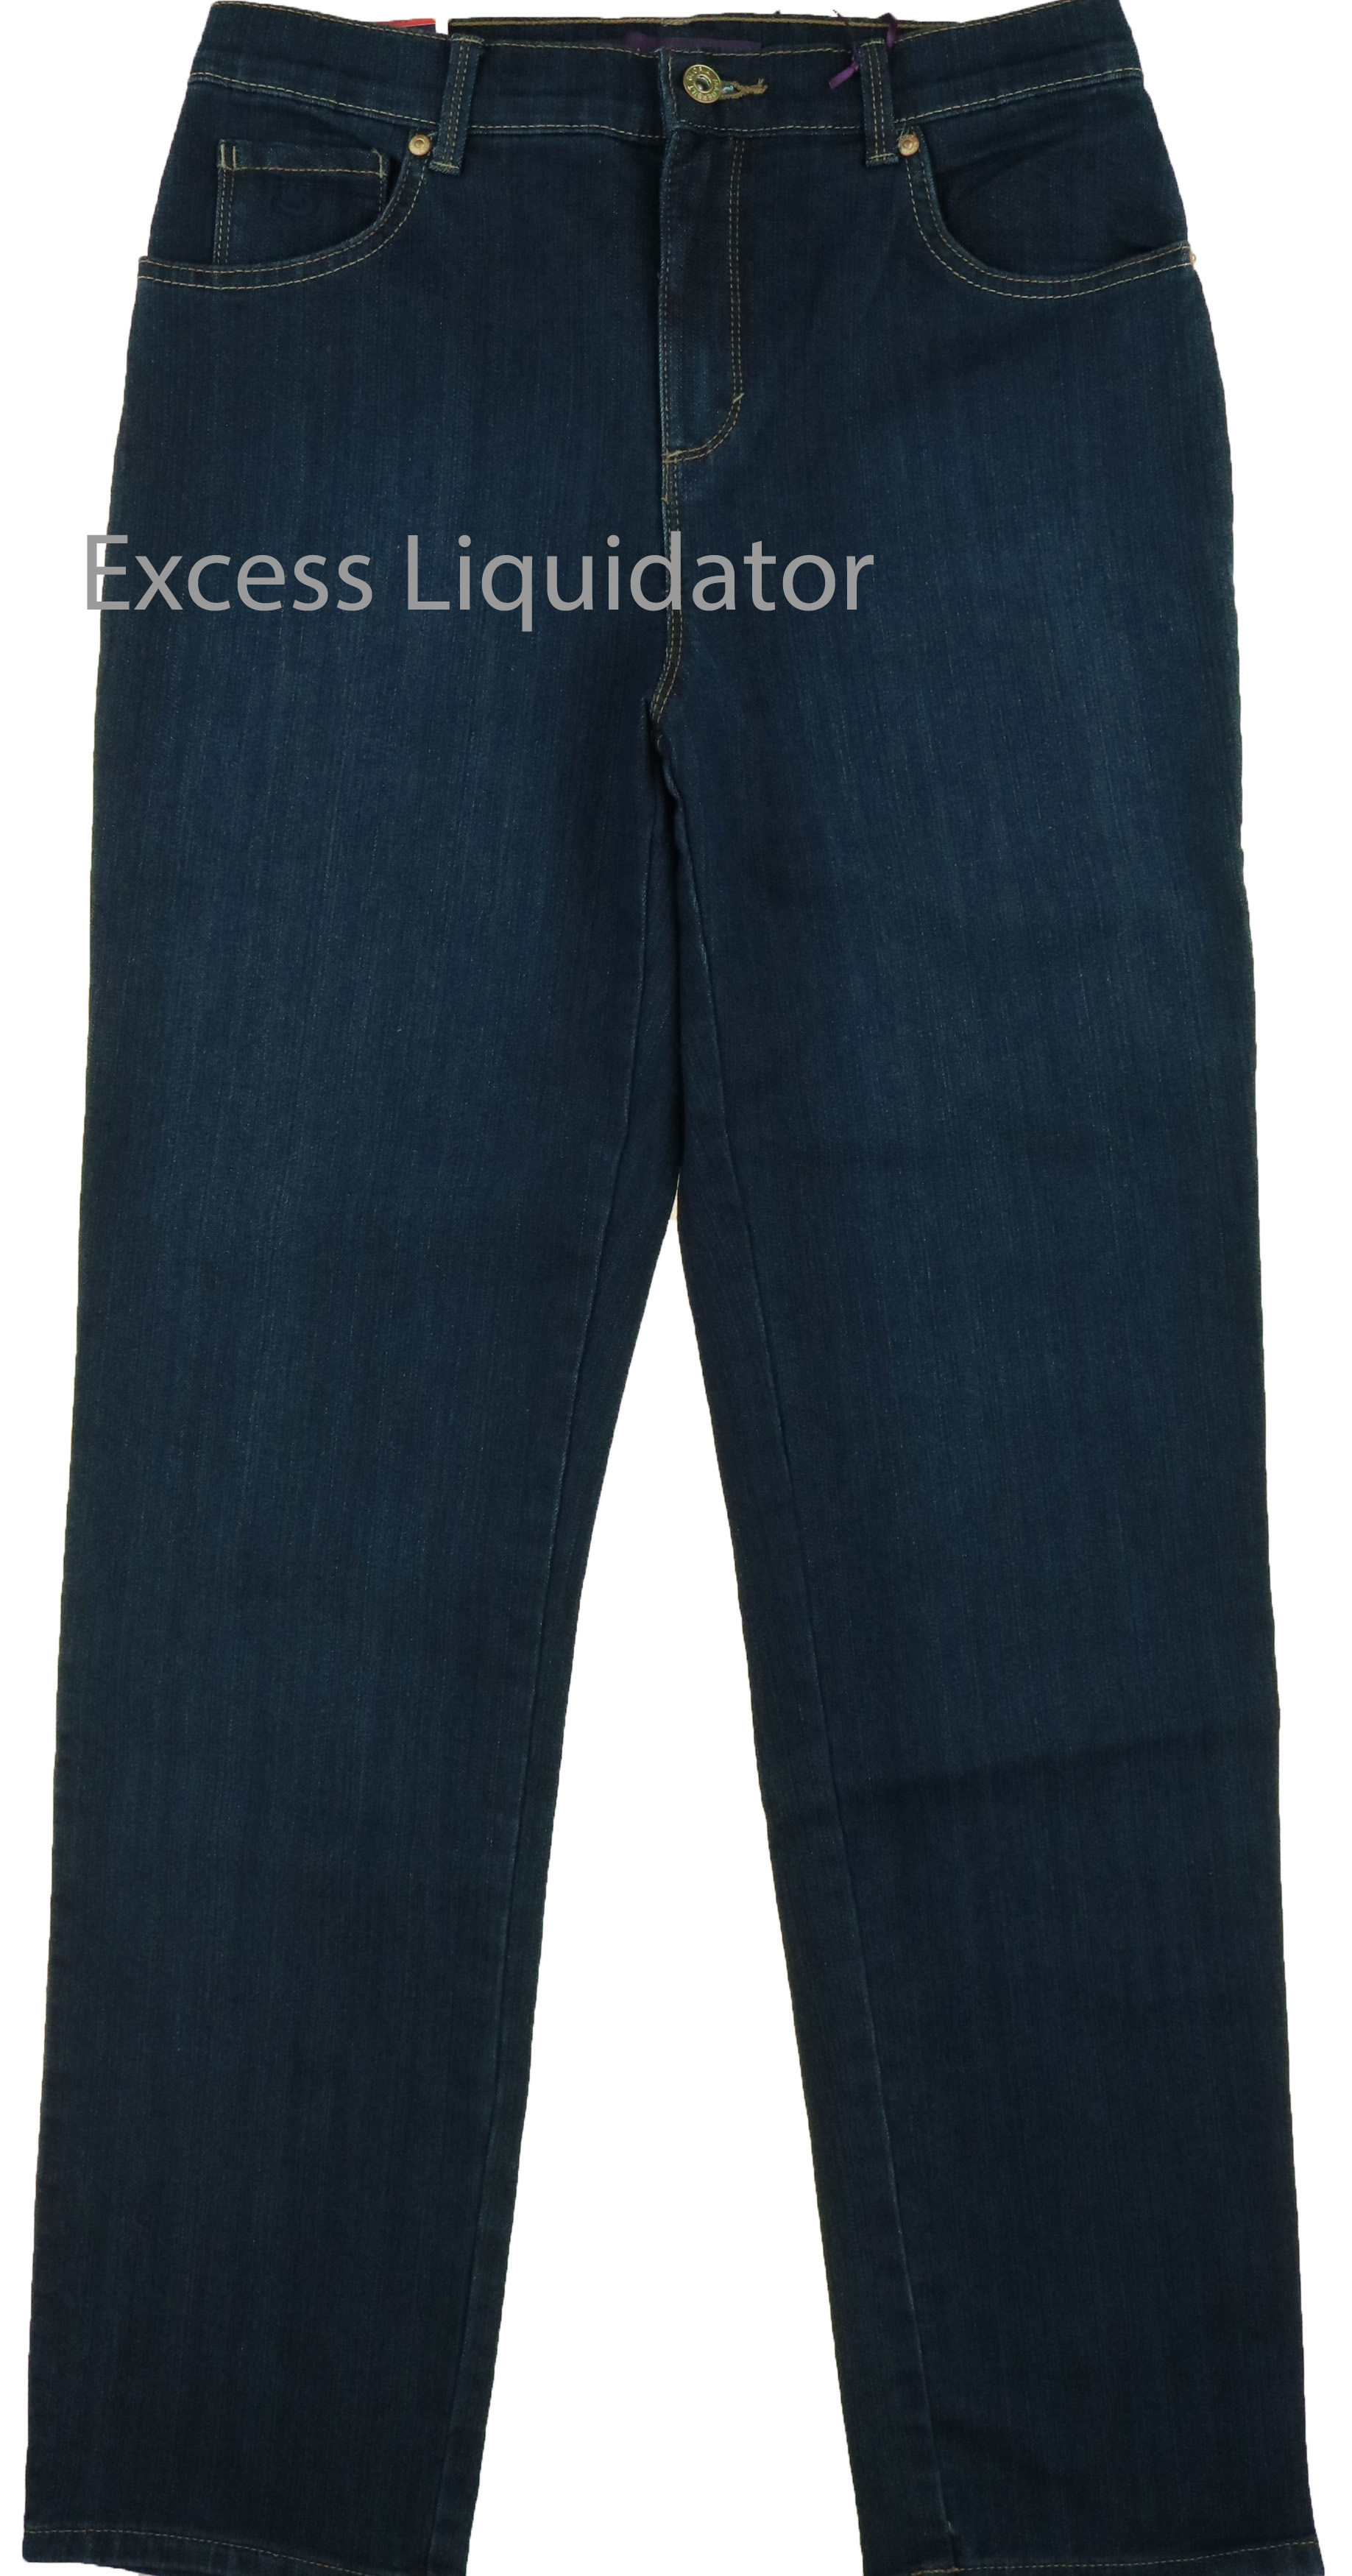 Model Givenchy Studded Tapered Leg Jeans 452 Women Clothing [11670170] - $238.01  Givenchy USA Sale ...